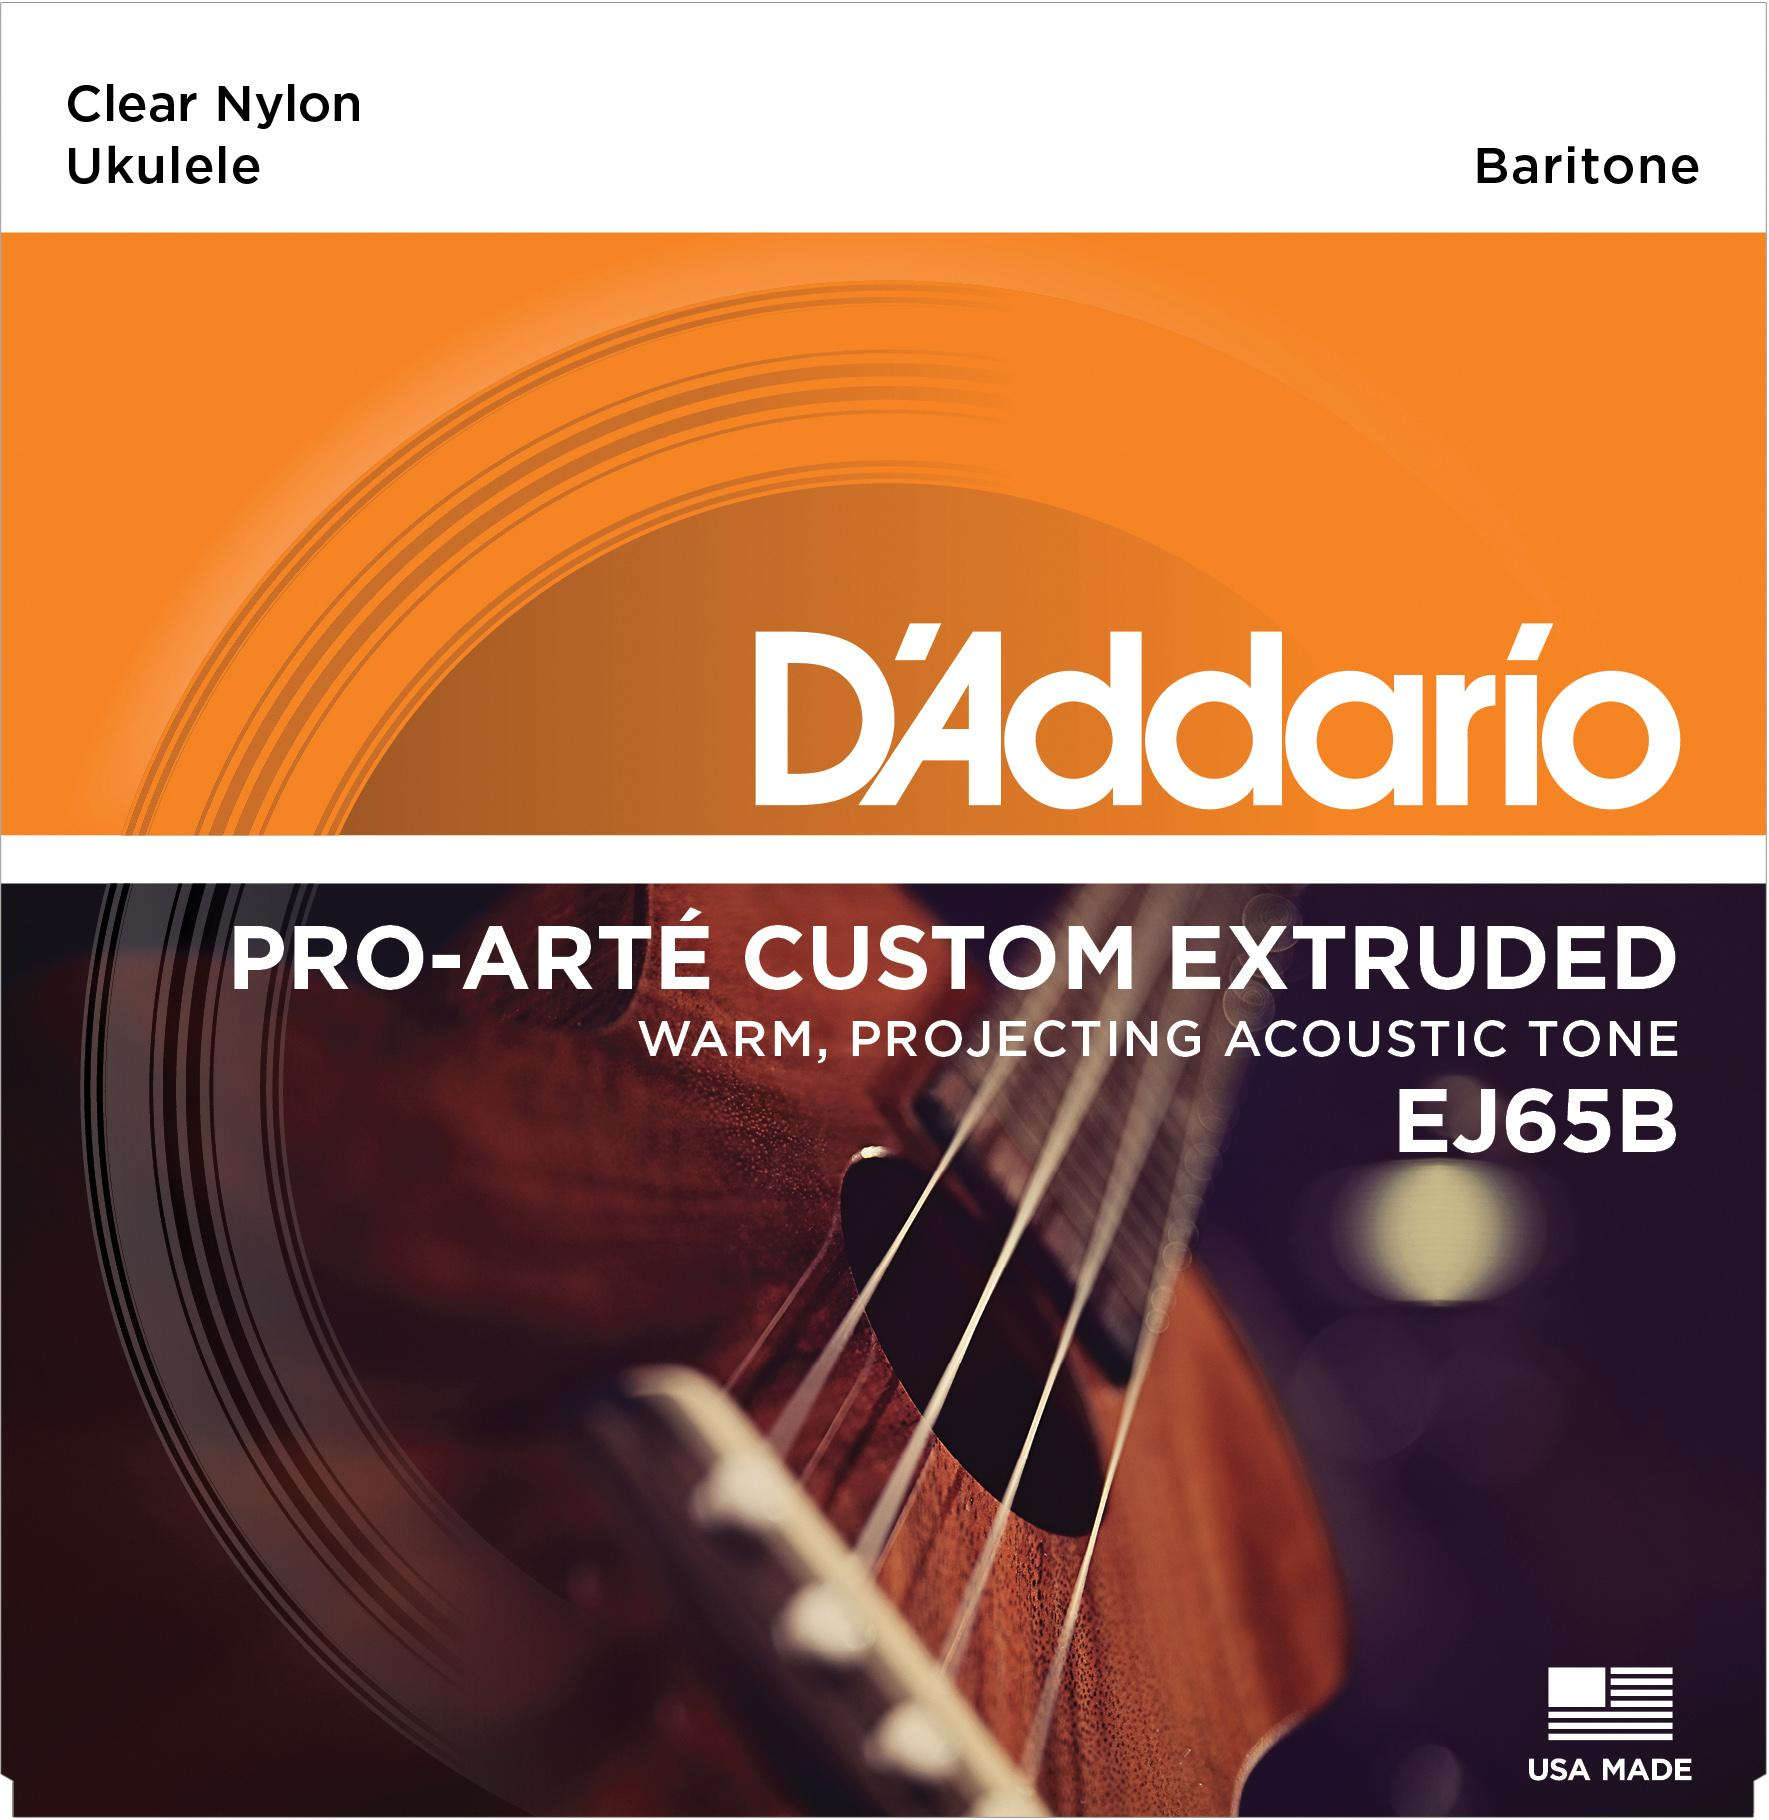 Daddario Ej87t Titanium Ukulele Strings Tenor Musical Together With How To String A Diagram On Note From The Manufacturer